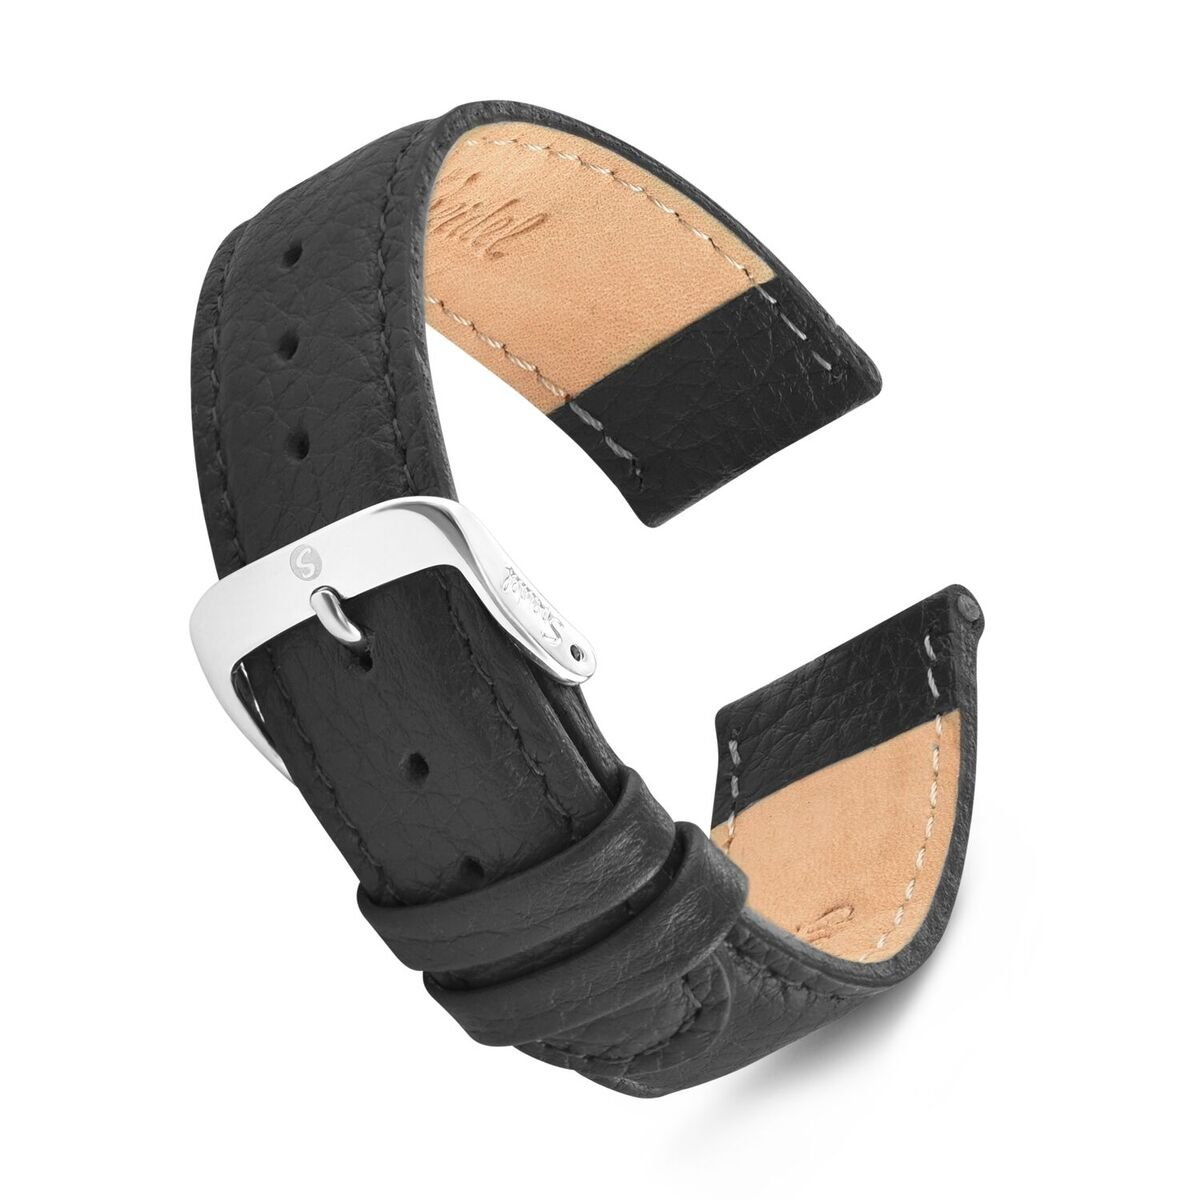 Speidel Genuine Leather Watch Band 19mm Black Calf Skin Replacement Strap with Tone on Tone Stitching, Stainless Steel Metal Buckle Clasp, Watchband Fits Most Watch Brands